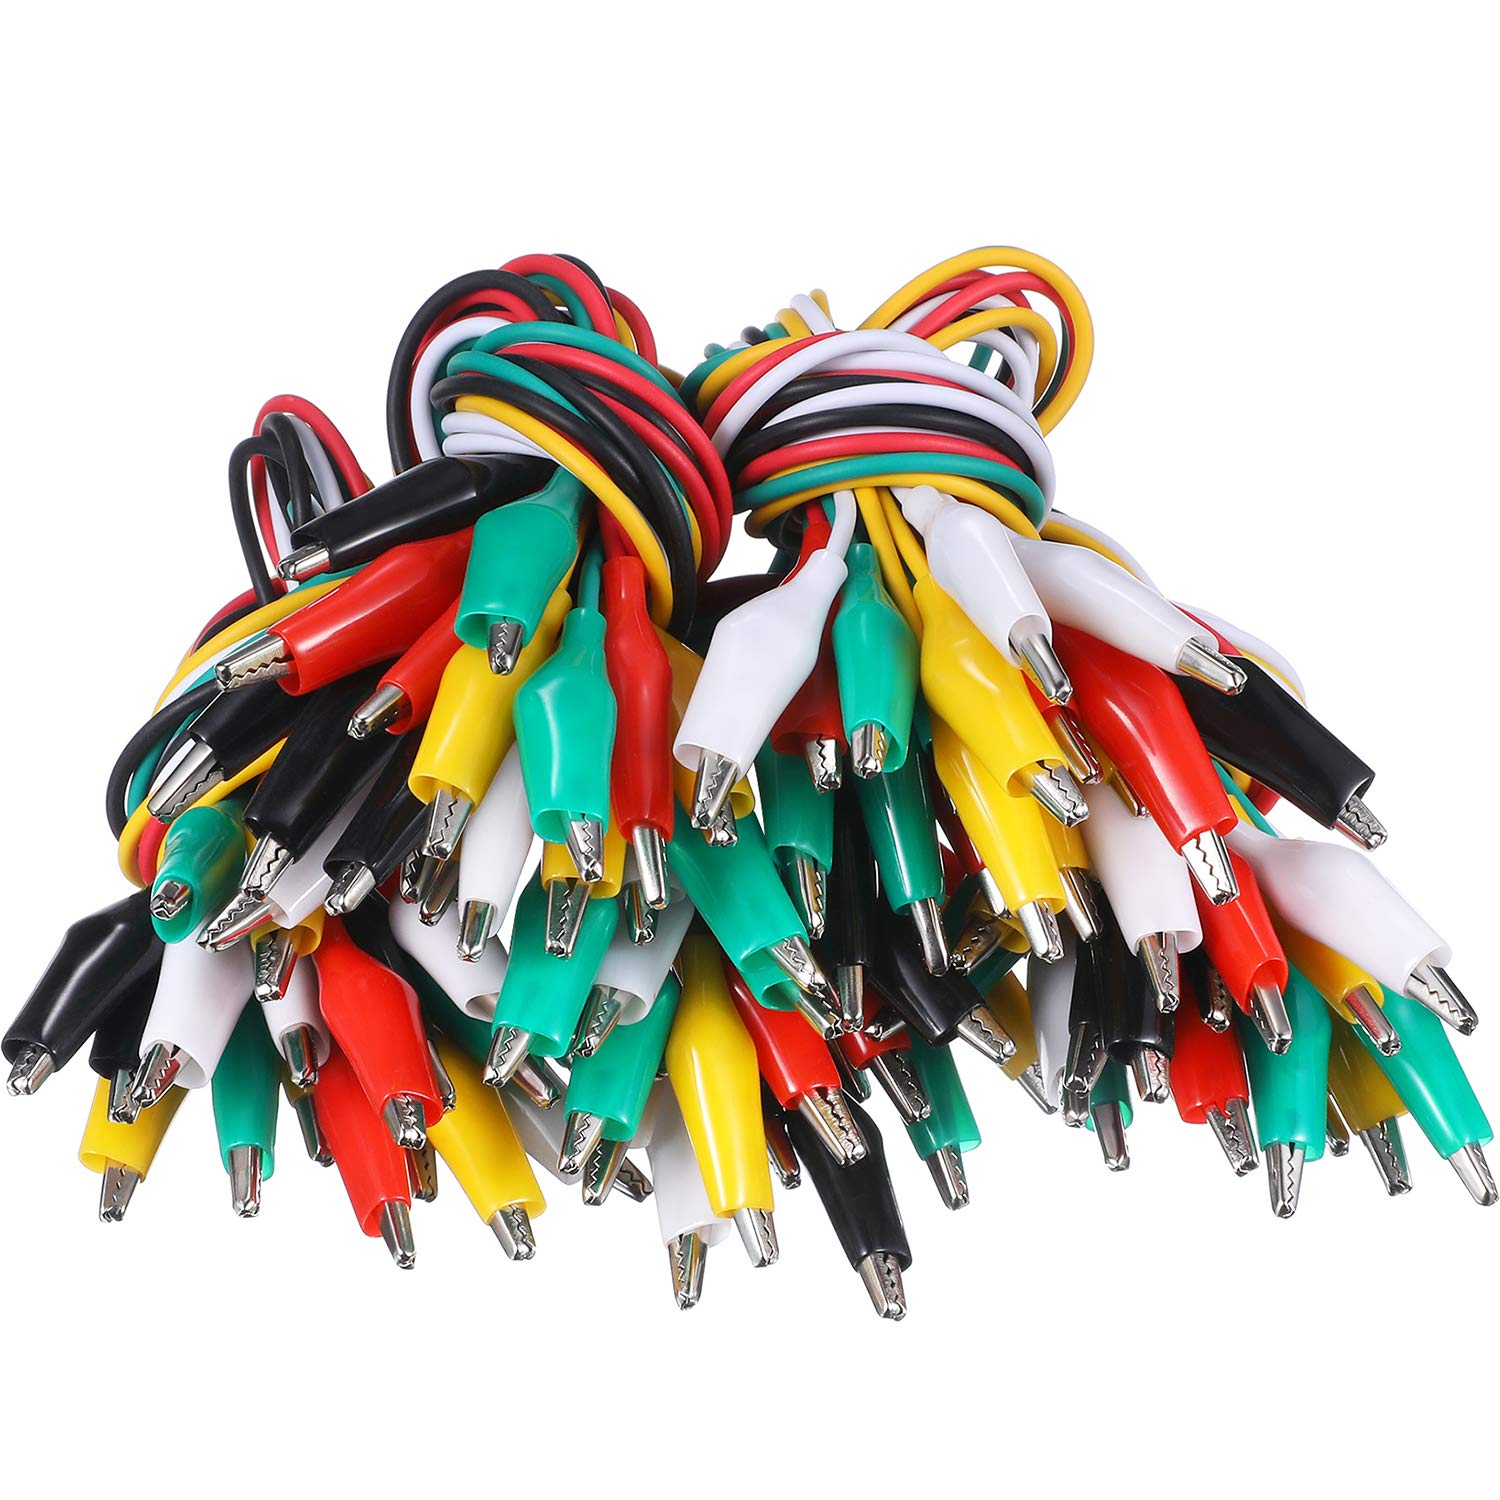 Gejoy 50 Pieces 19.7 Inch Test Leads Kit with Alligator Clips Double-end Alligator Clips Jumper Wires